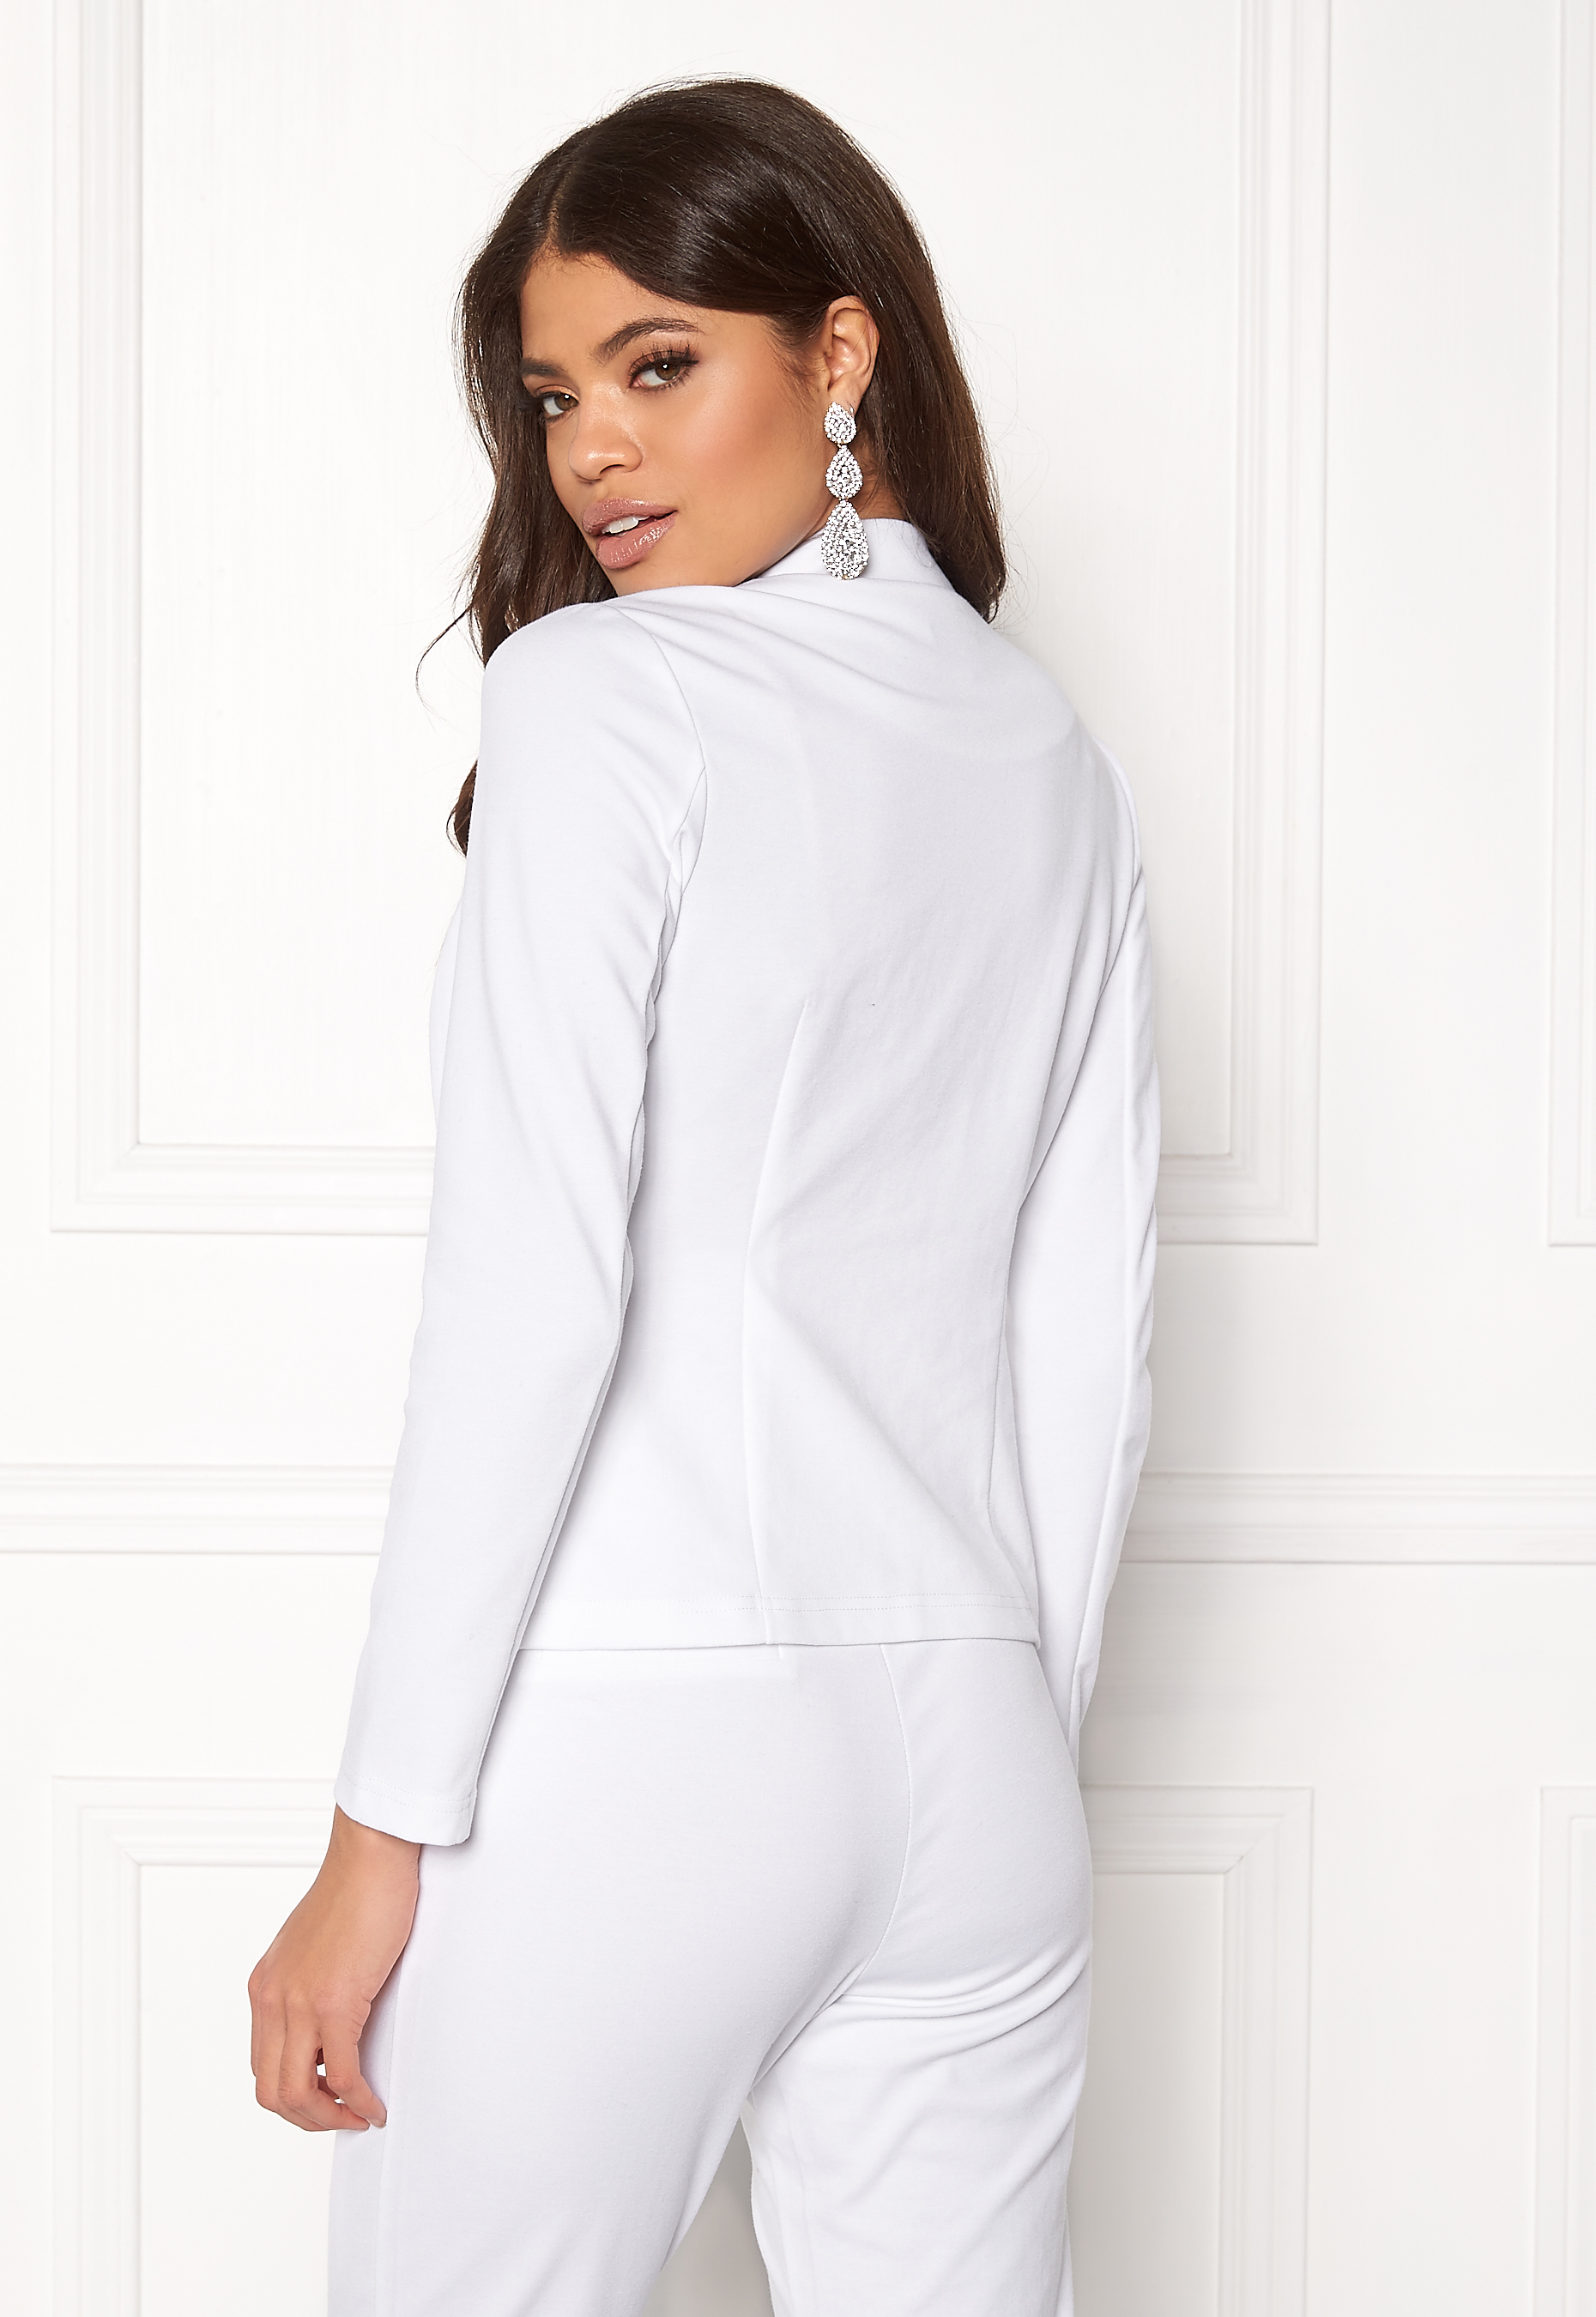 BUBBLEROOM Brienne blazer White - Bubbleroom d77f55081a423